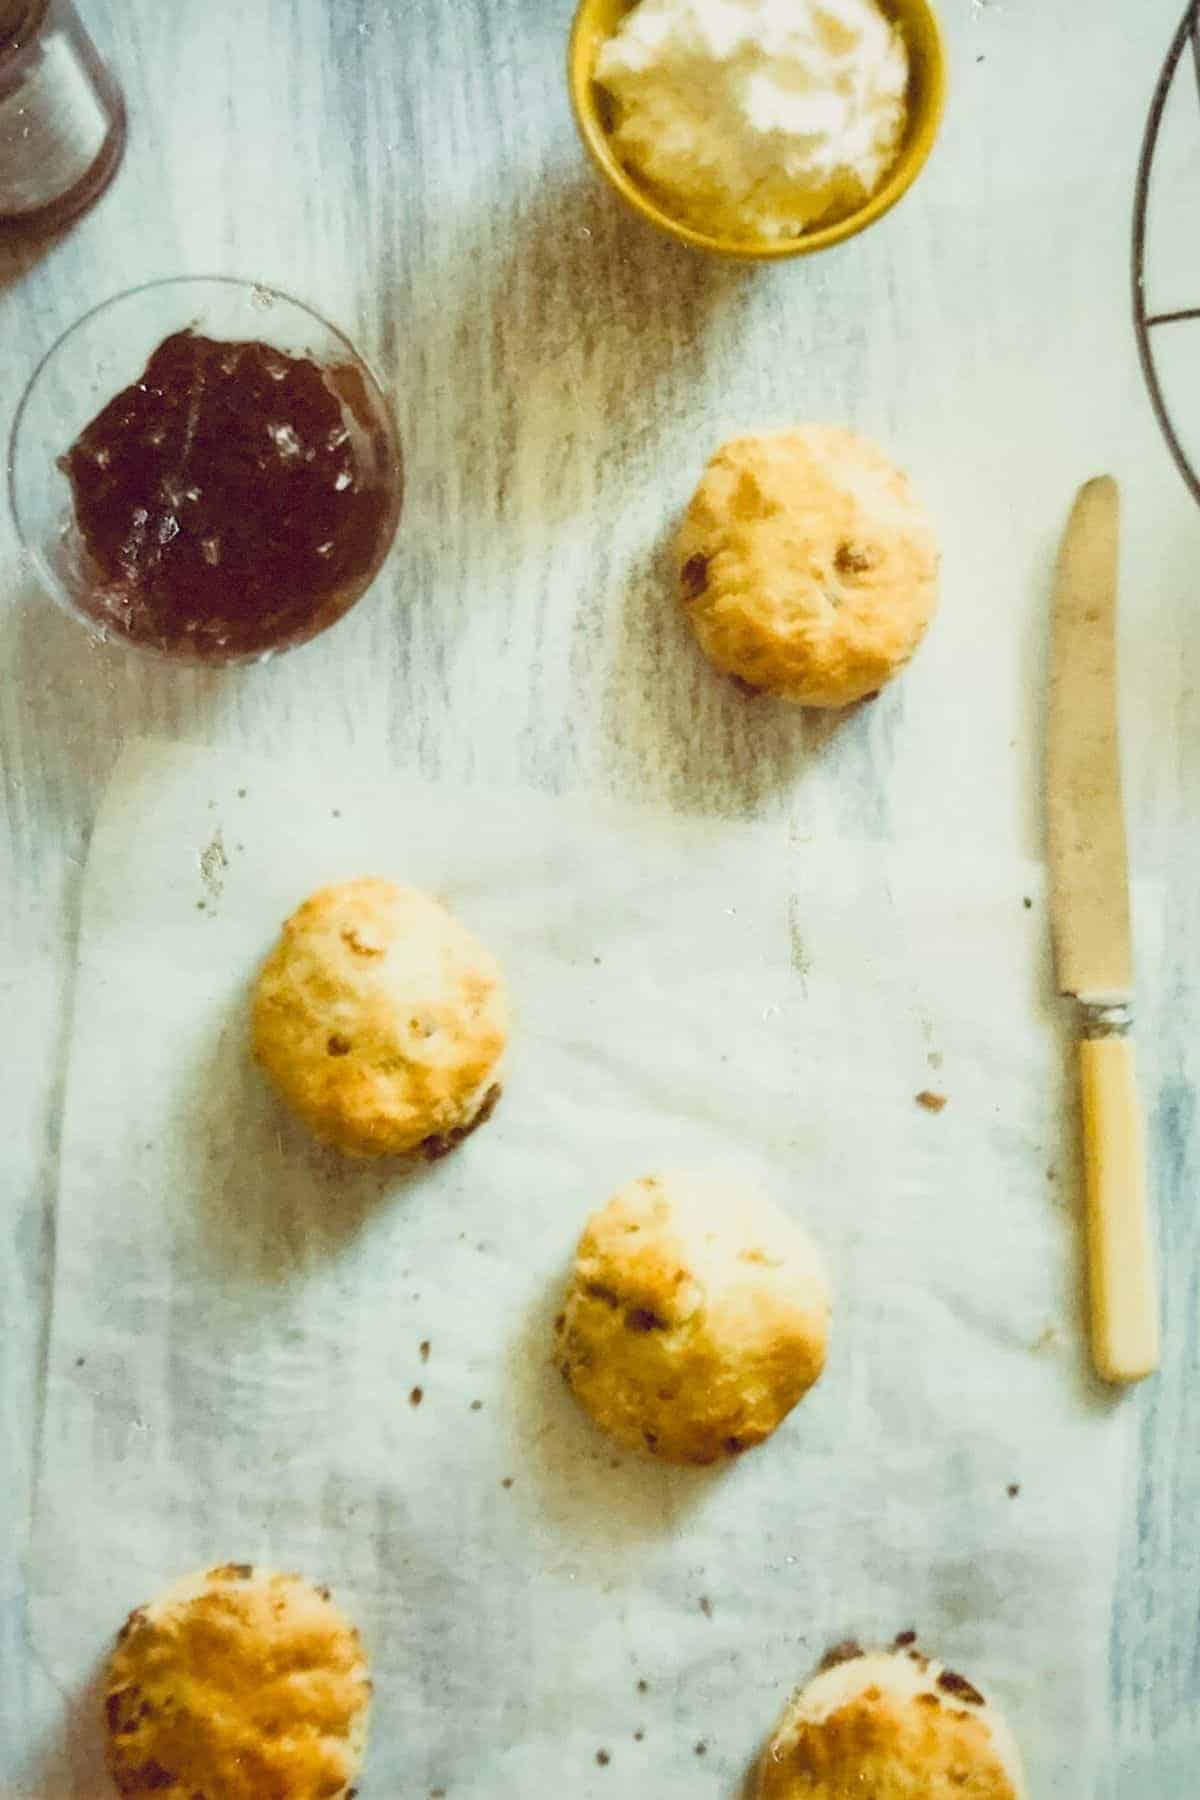 lemon and date scones on a table with jam and a knife